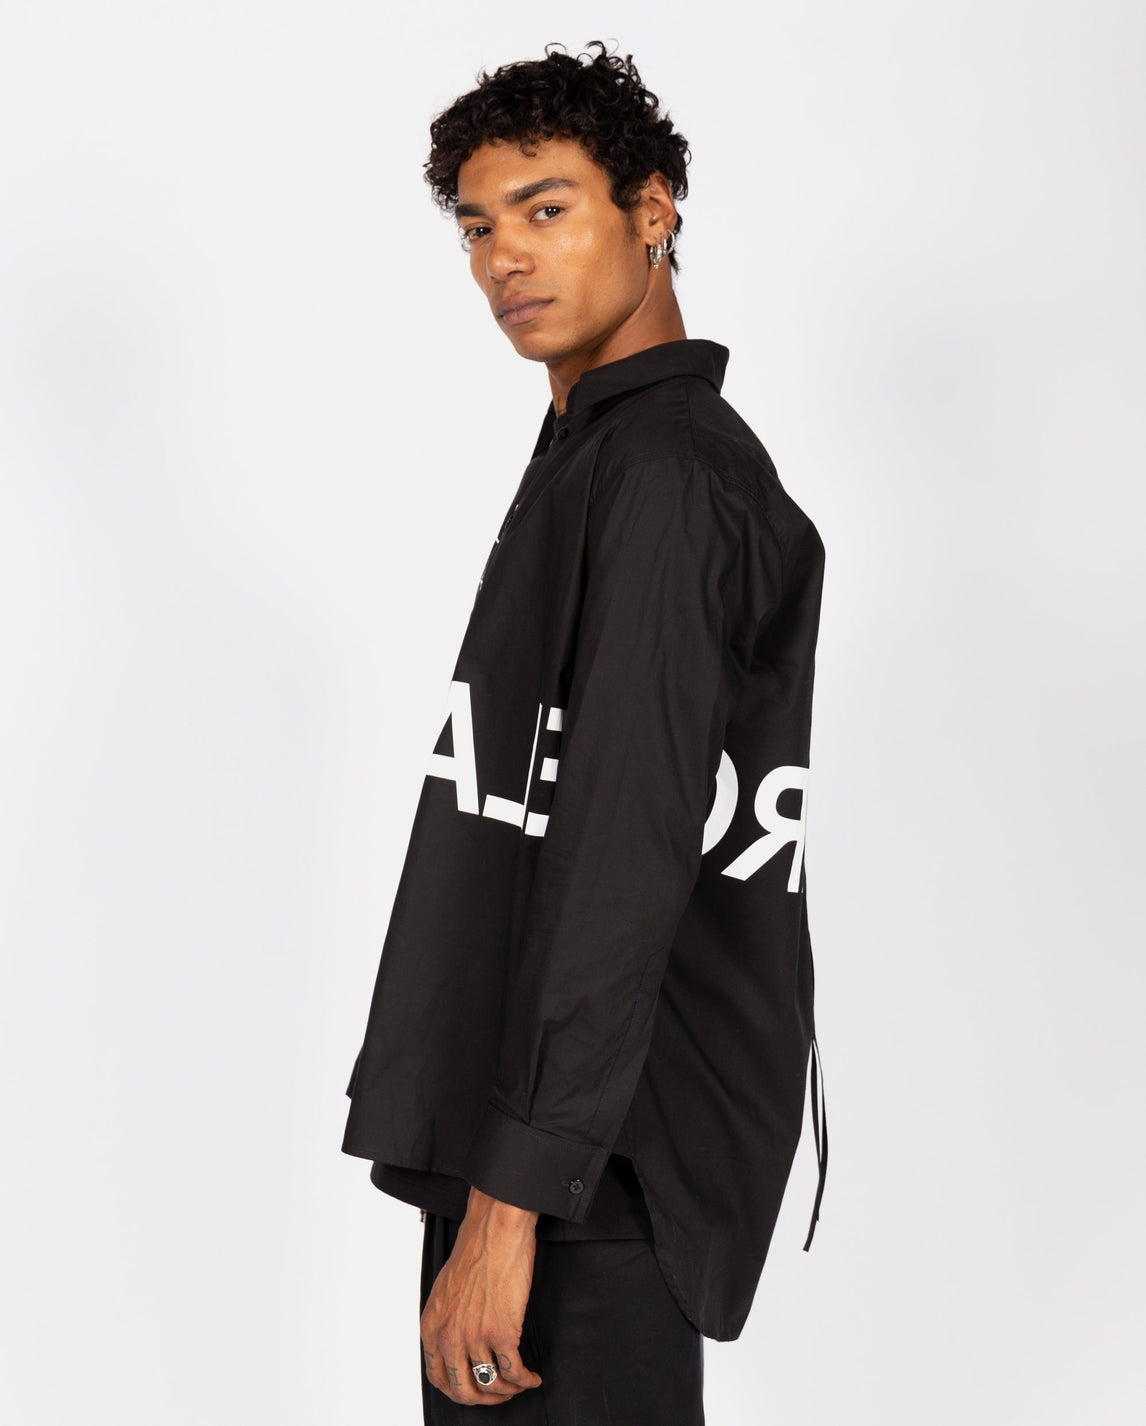 Graphic Print Shirt - Black UNISEX MM6 MAISON MARGIELA